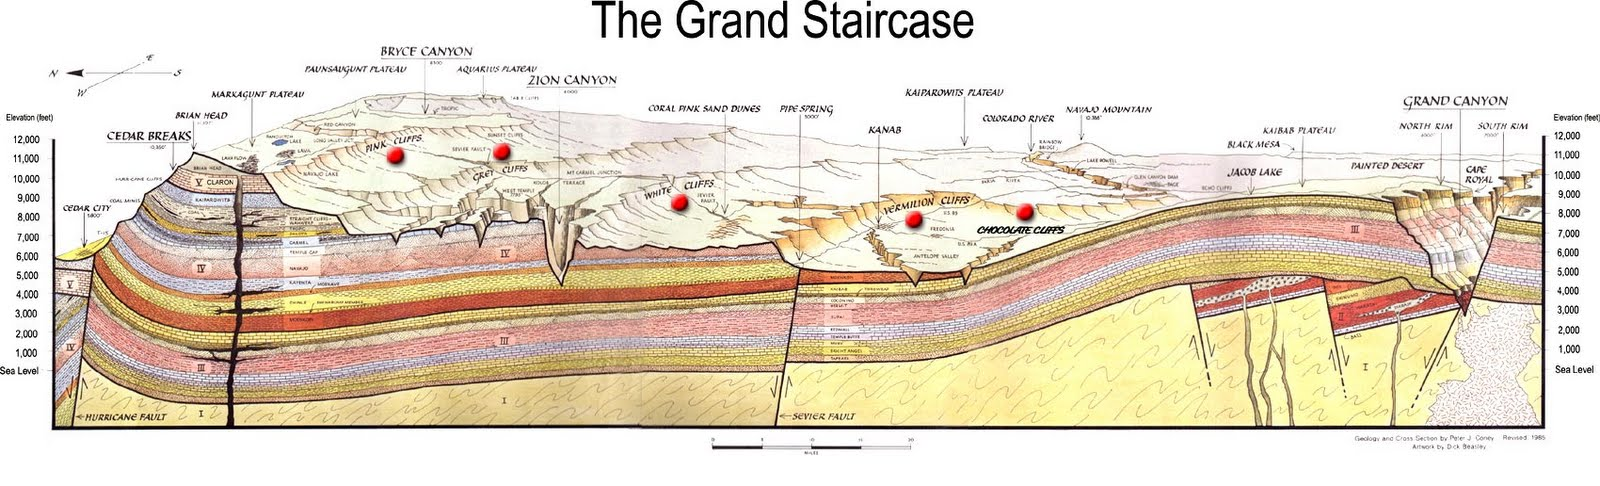 The fantasy of evolution angular unconformities an alternative build tilt erode build interpretation is conjecture but there is another angular unconformity in the region that i think clearly shows that it had to publicscrutiny Gallery